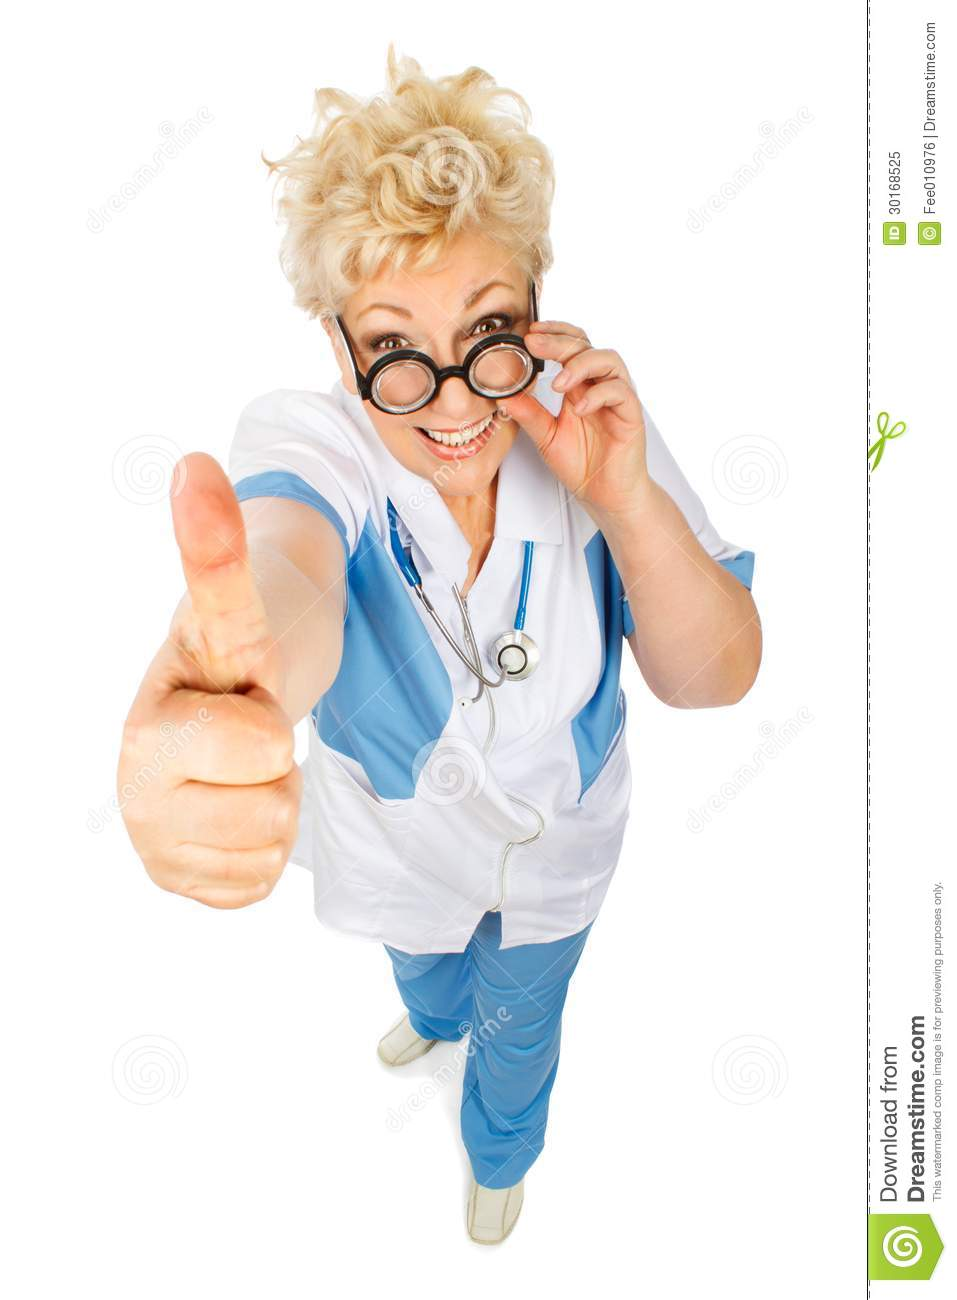 Smiling adult woman doctor shows thumb in camera